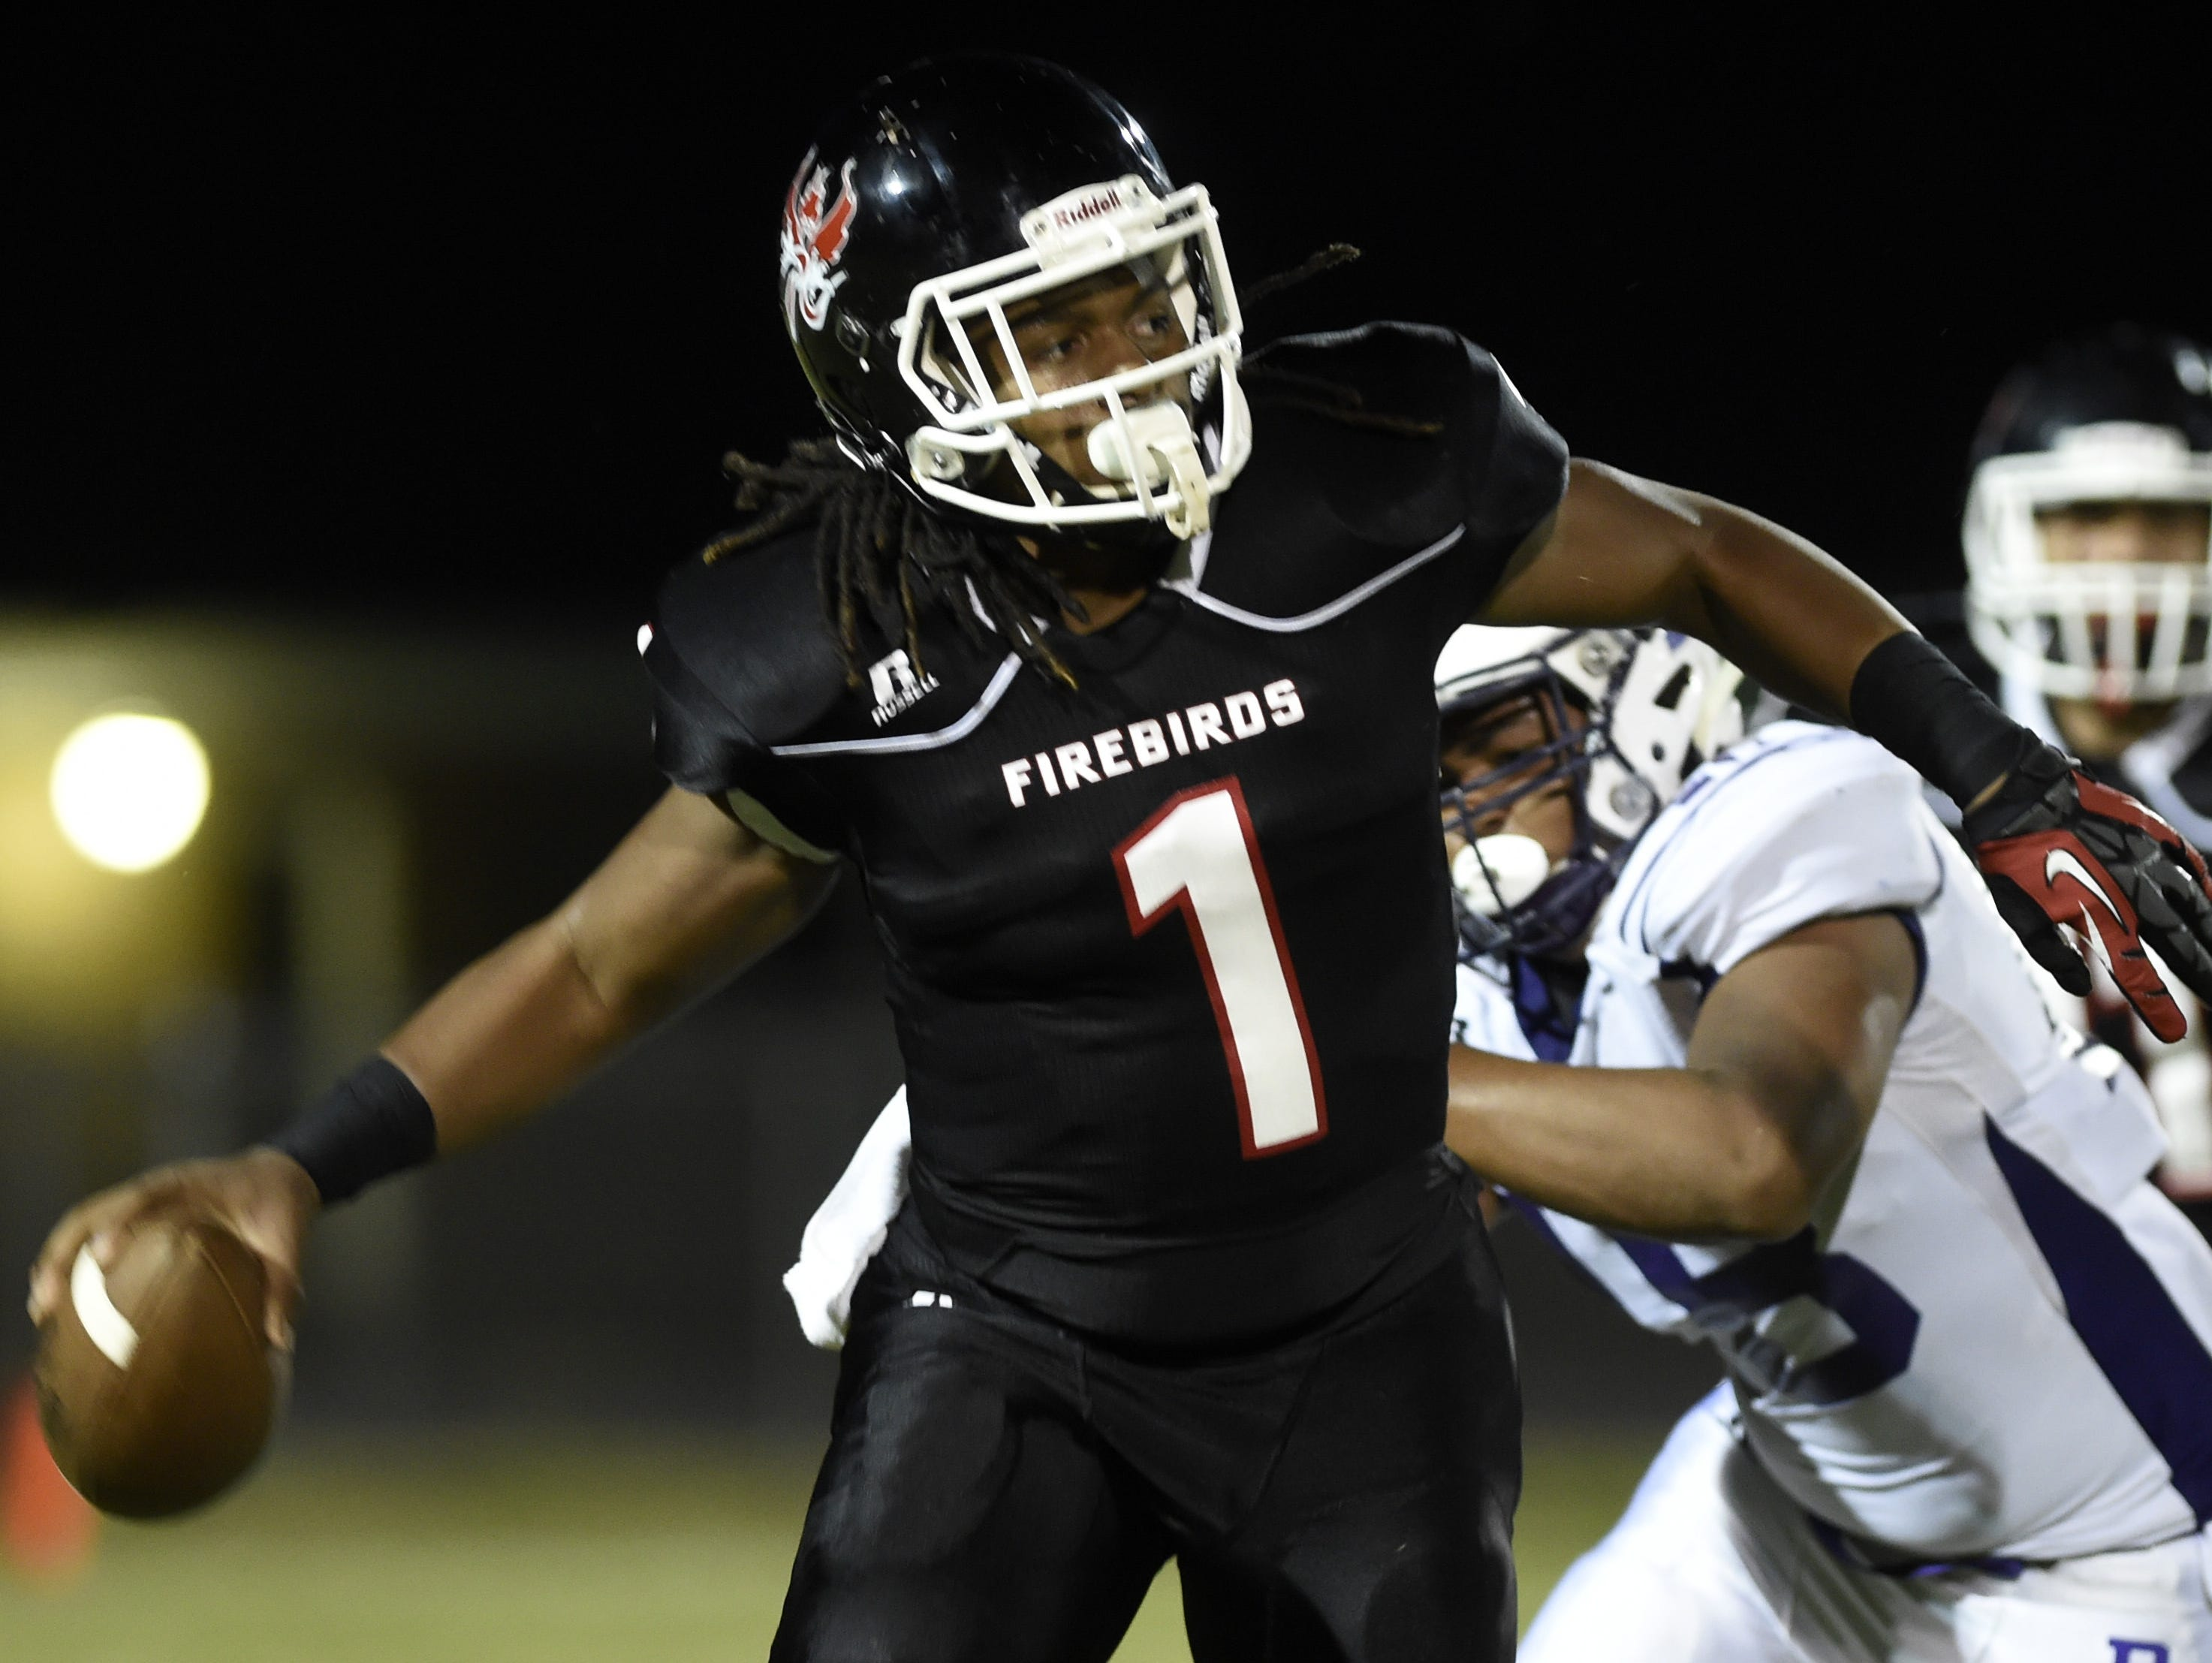 Pearl-Cohn quarterback Jimmy Ferrell (1) has thrown for 2,000 yards and 21 touchdowns this season.